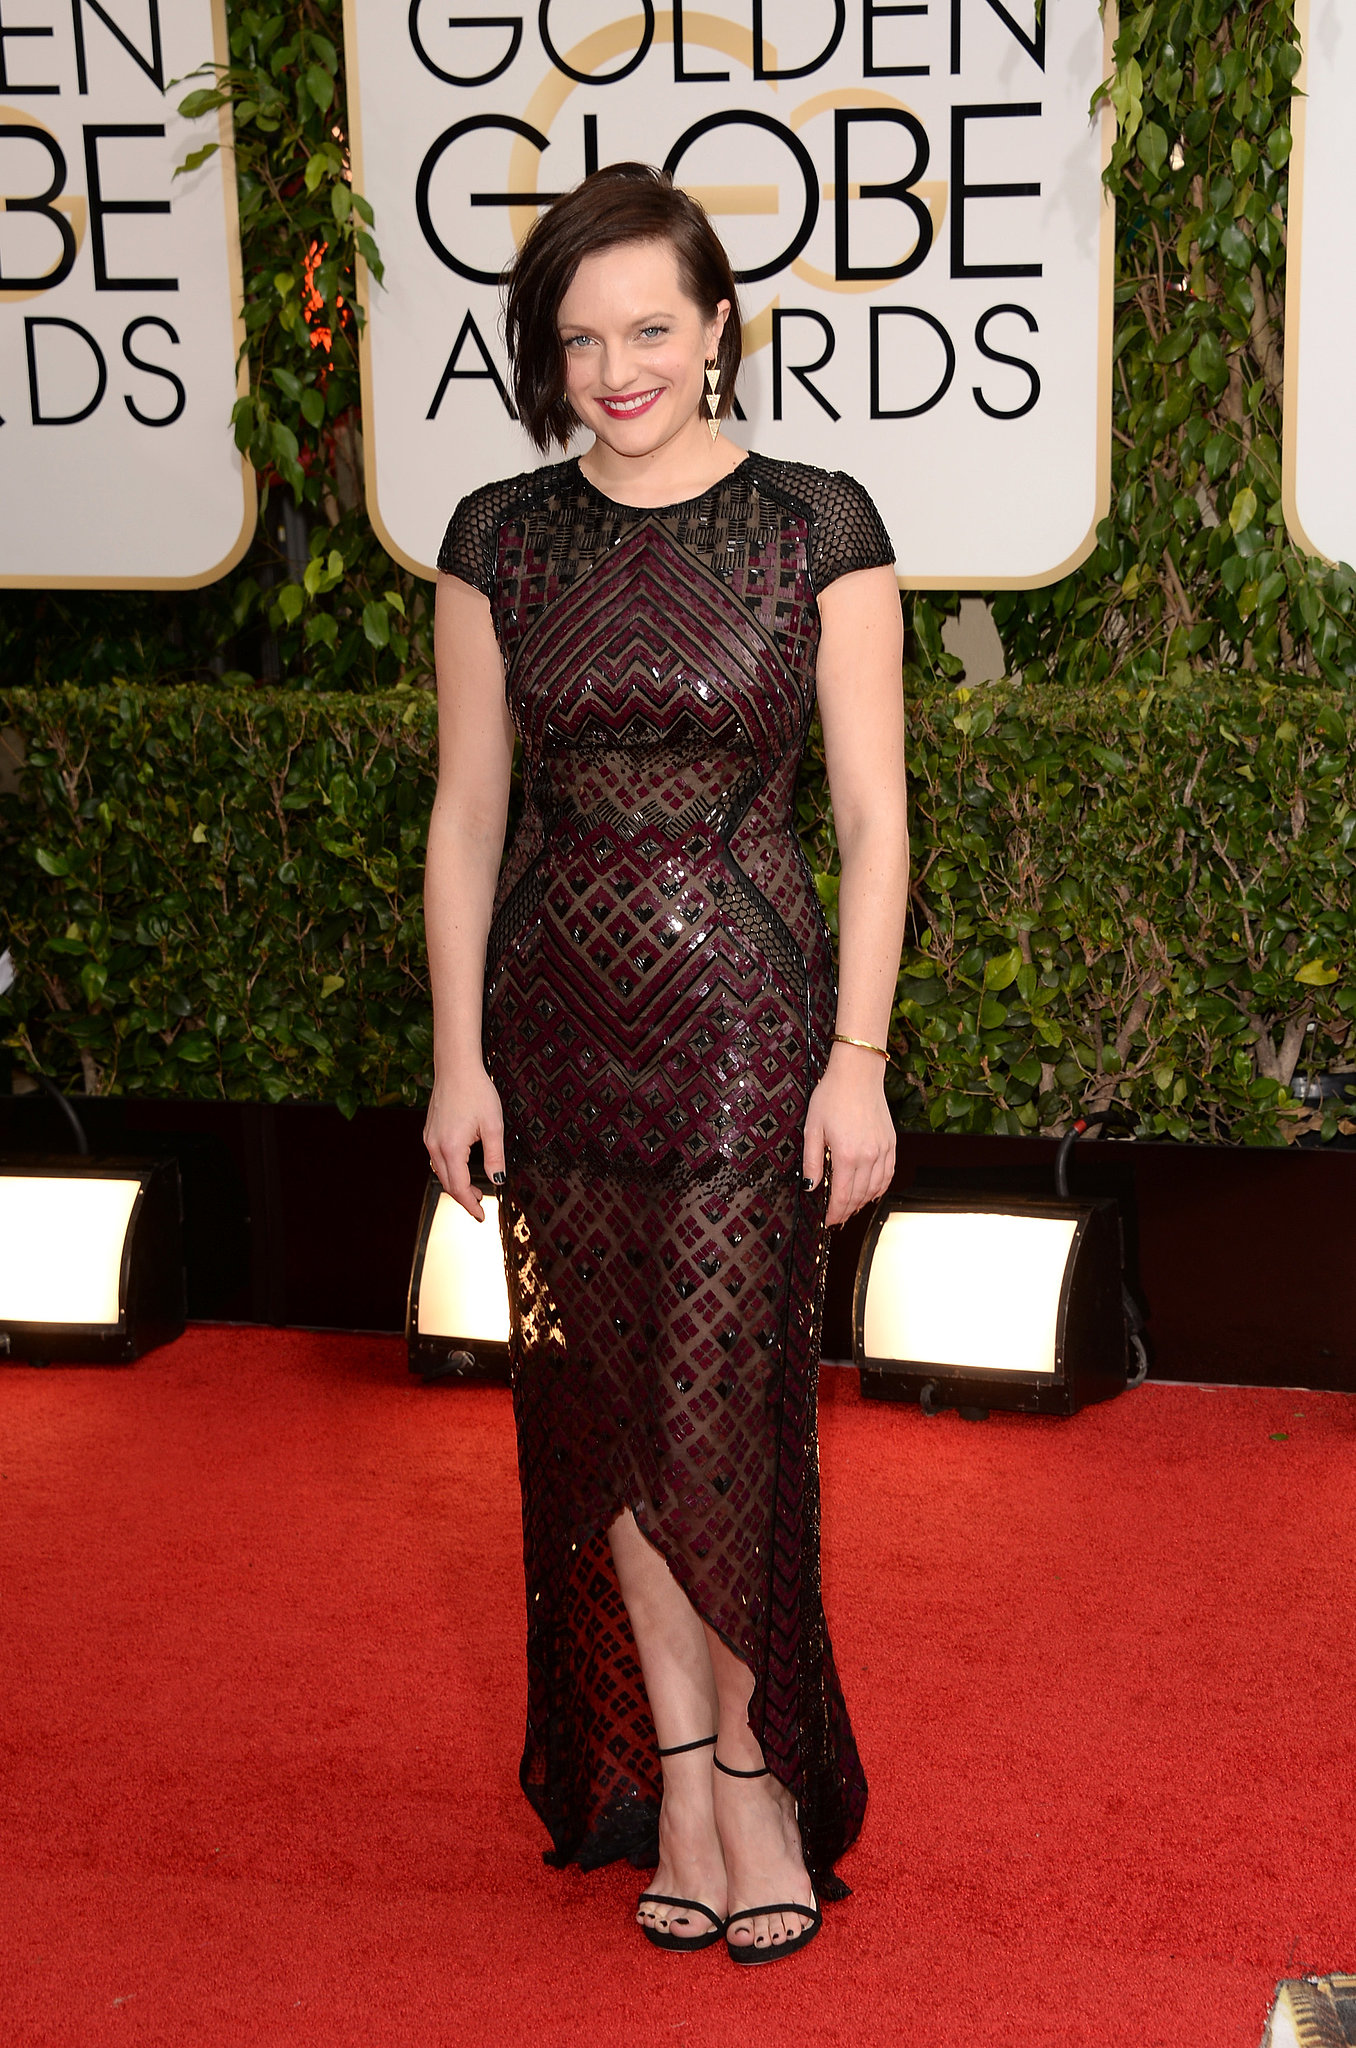 Mad Men's Elisabeth Moss showed up on the red carpet.